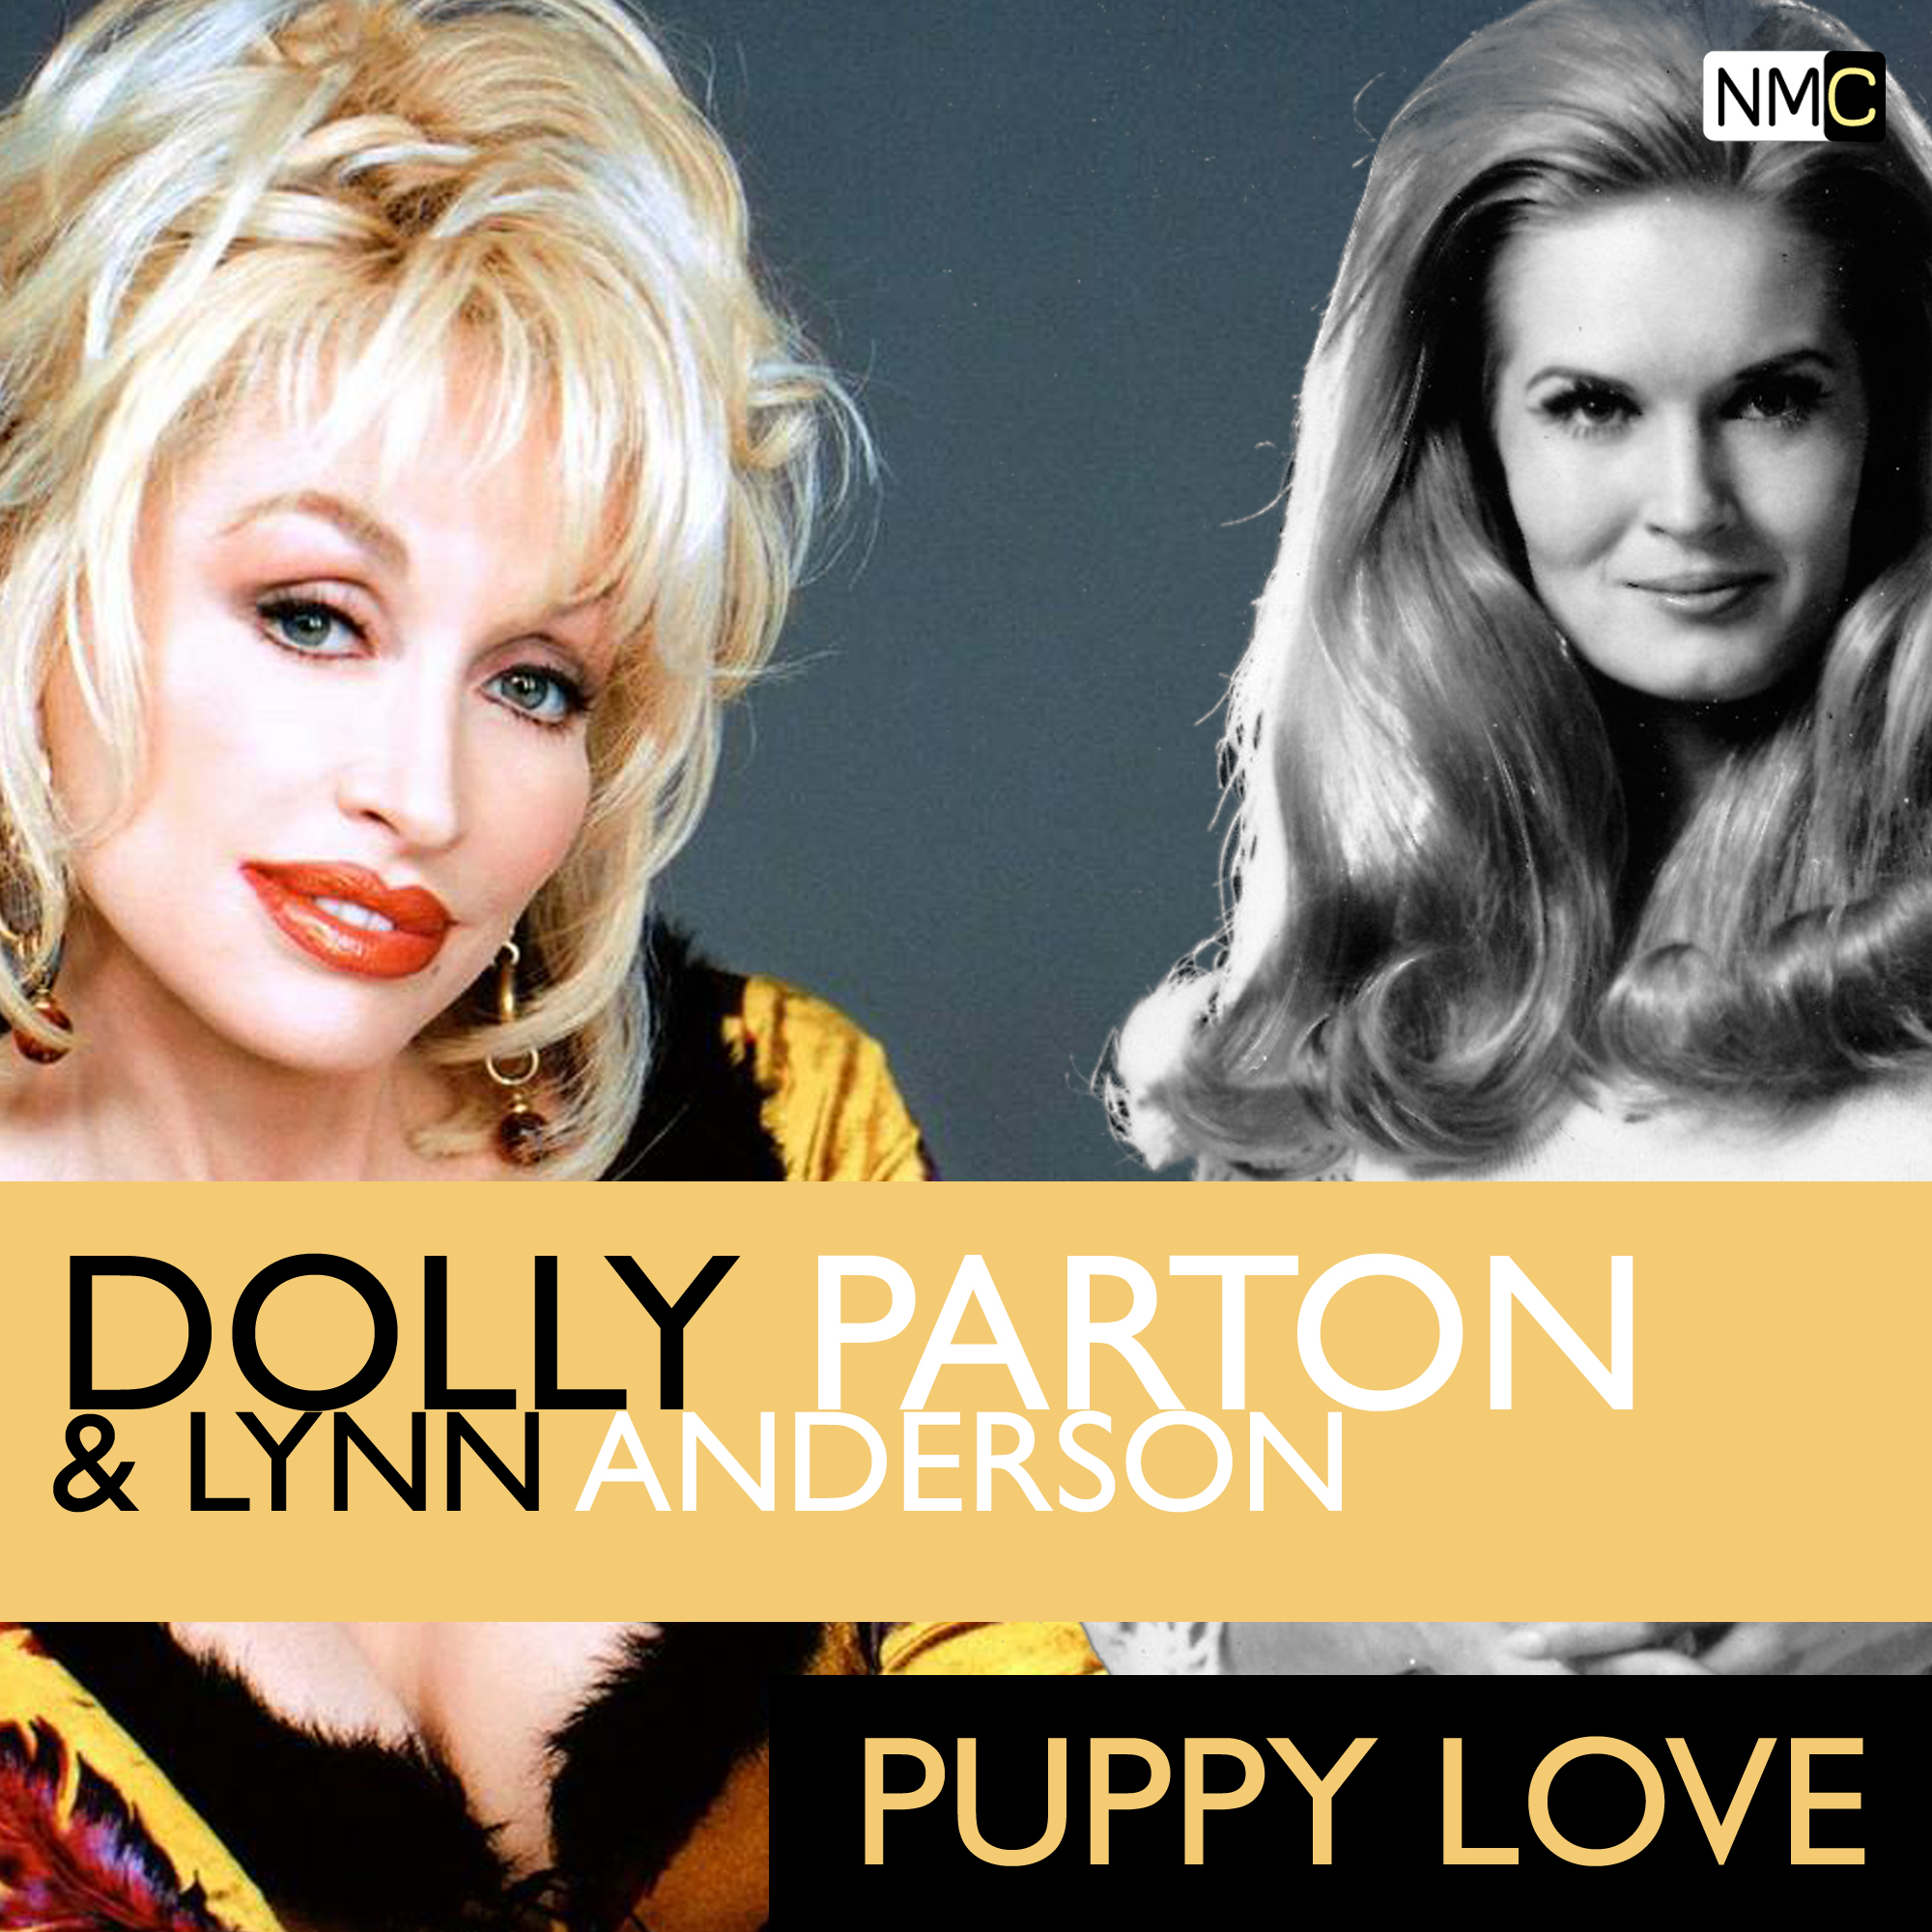 puppy love dolly parton lynn anderson country female vocal nostalgia music catalogue old songs